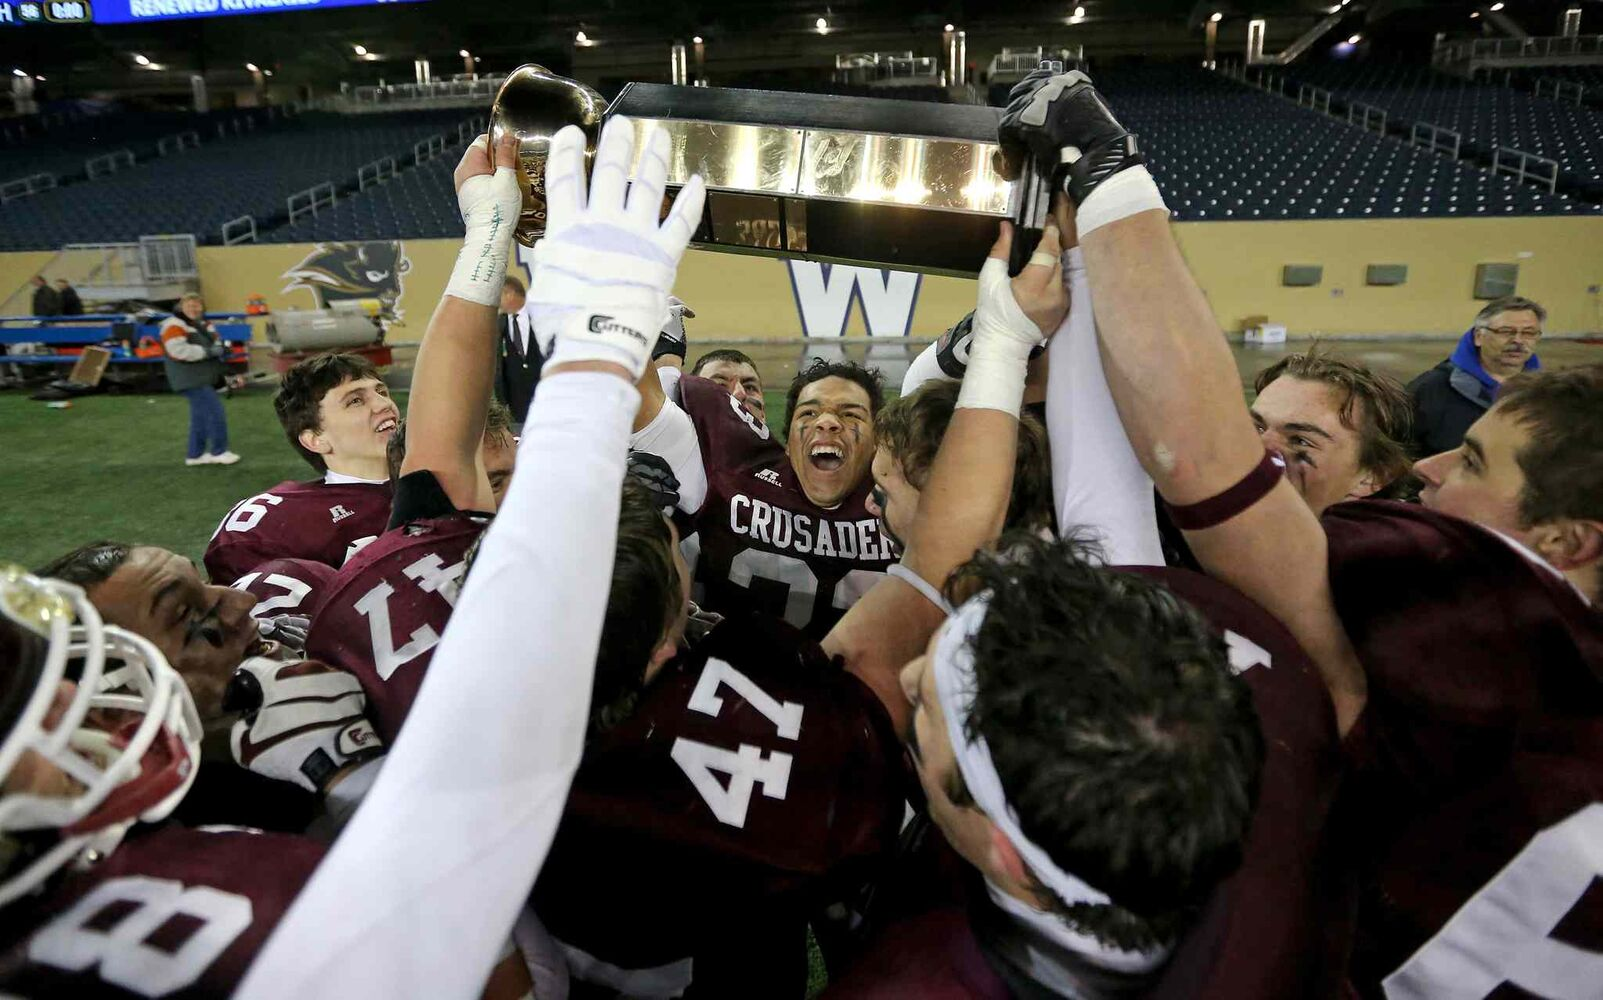 The St. Paul's Crusaders hoist the hardware. (Trevor Hagan / Winnipeg Free Press)